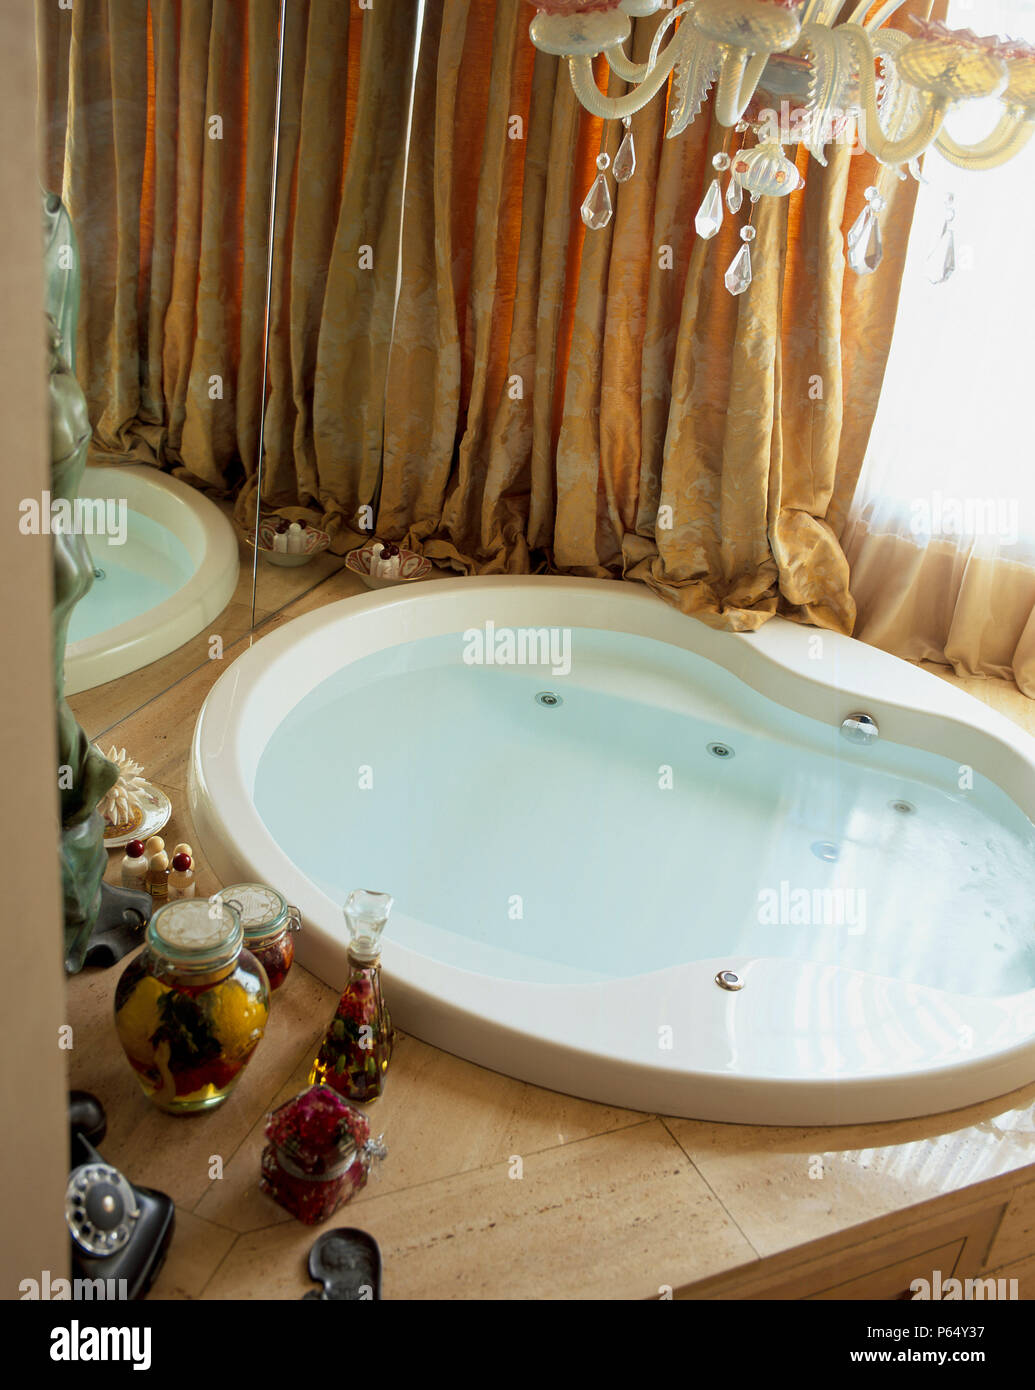 View of a bathtub filled with water - Stock Image